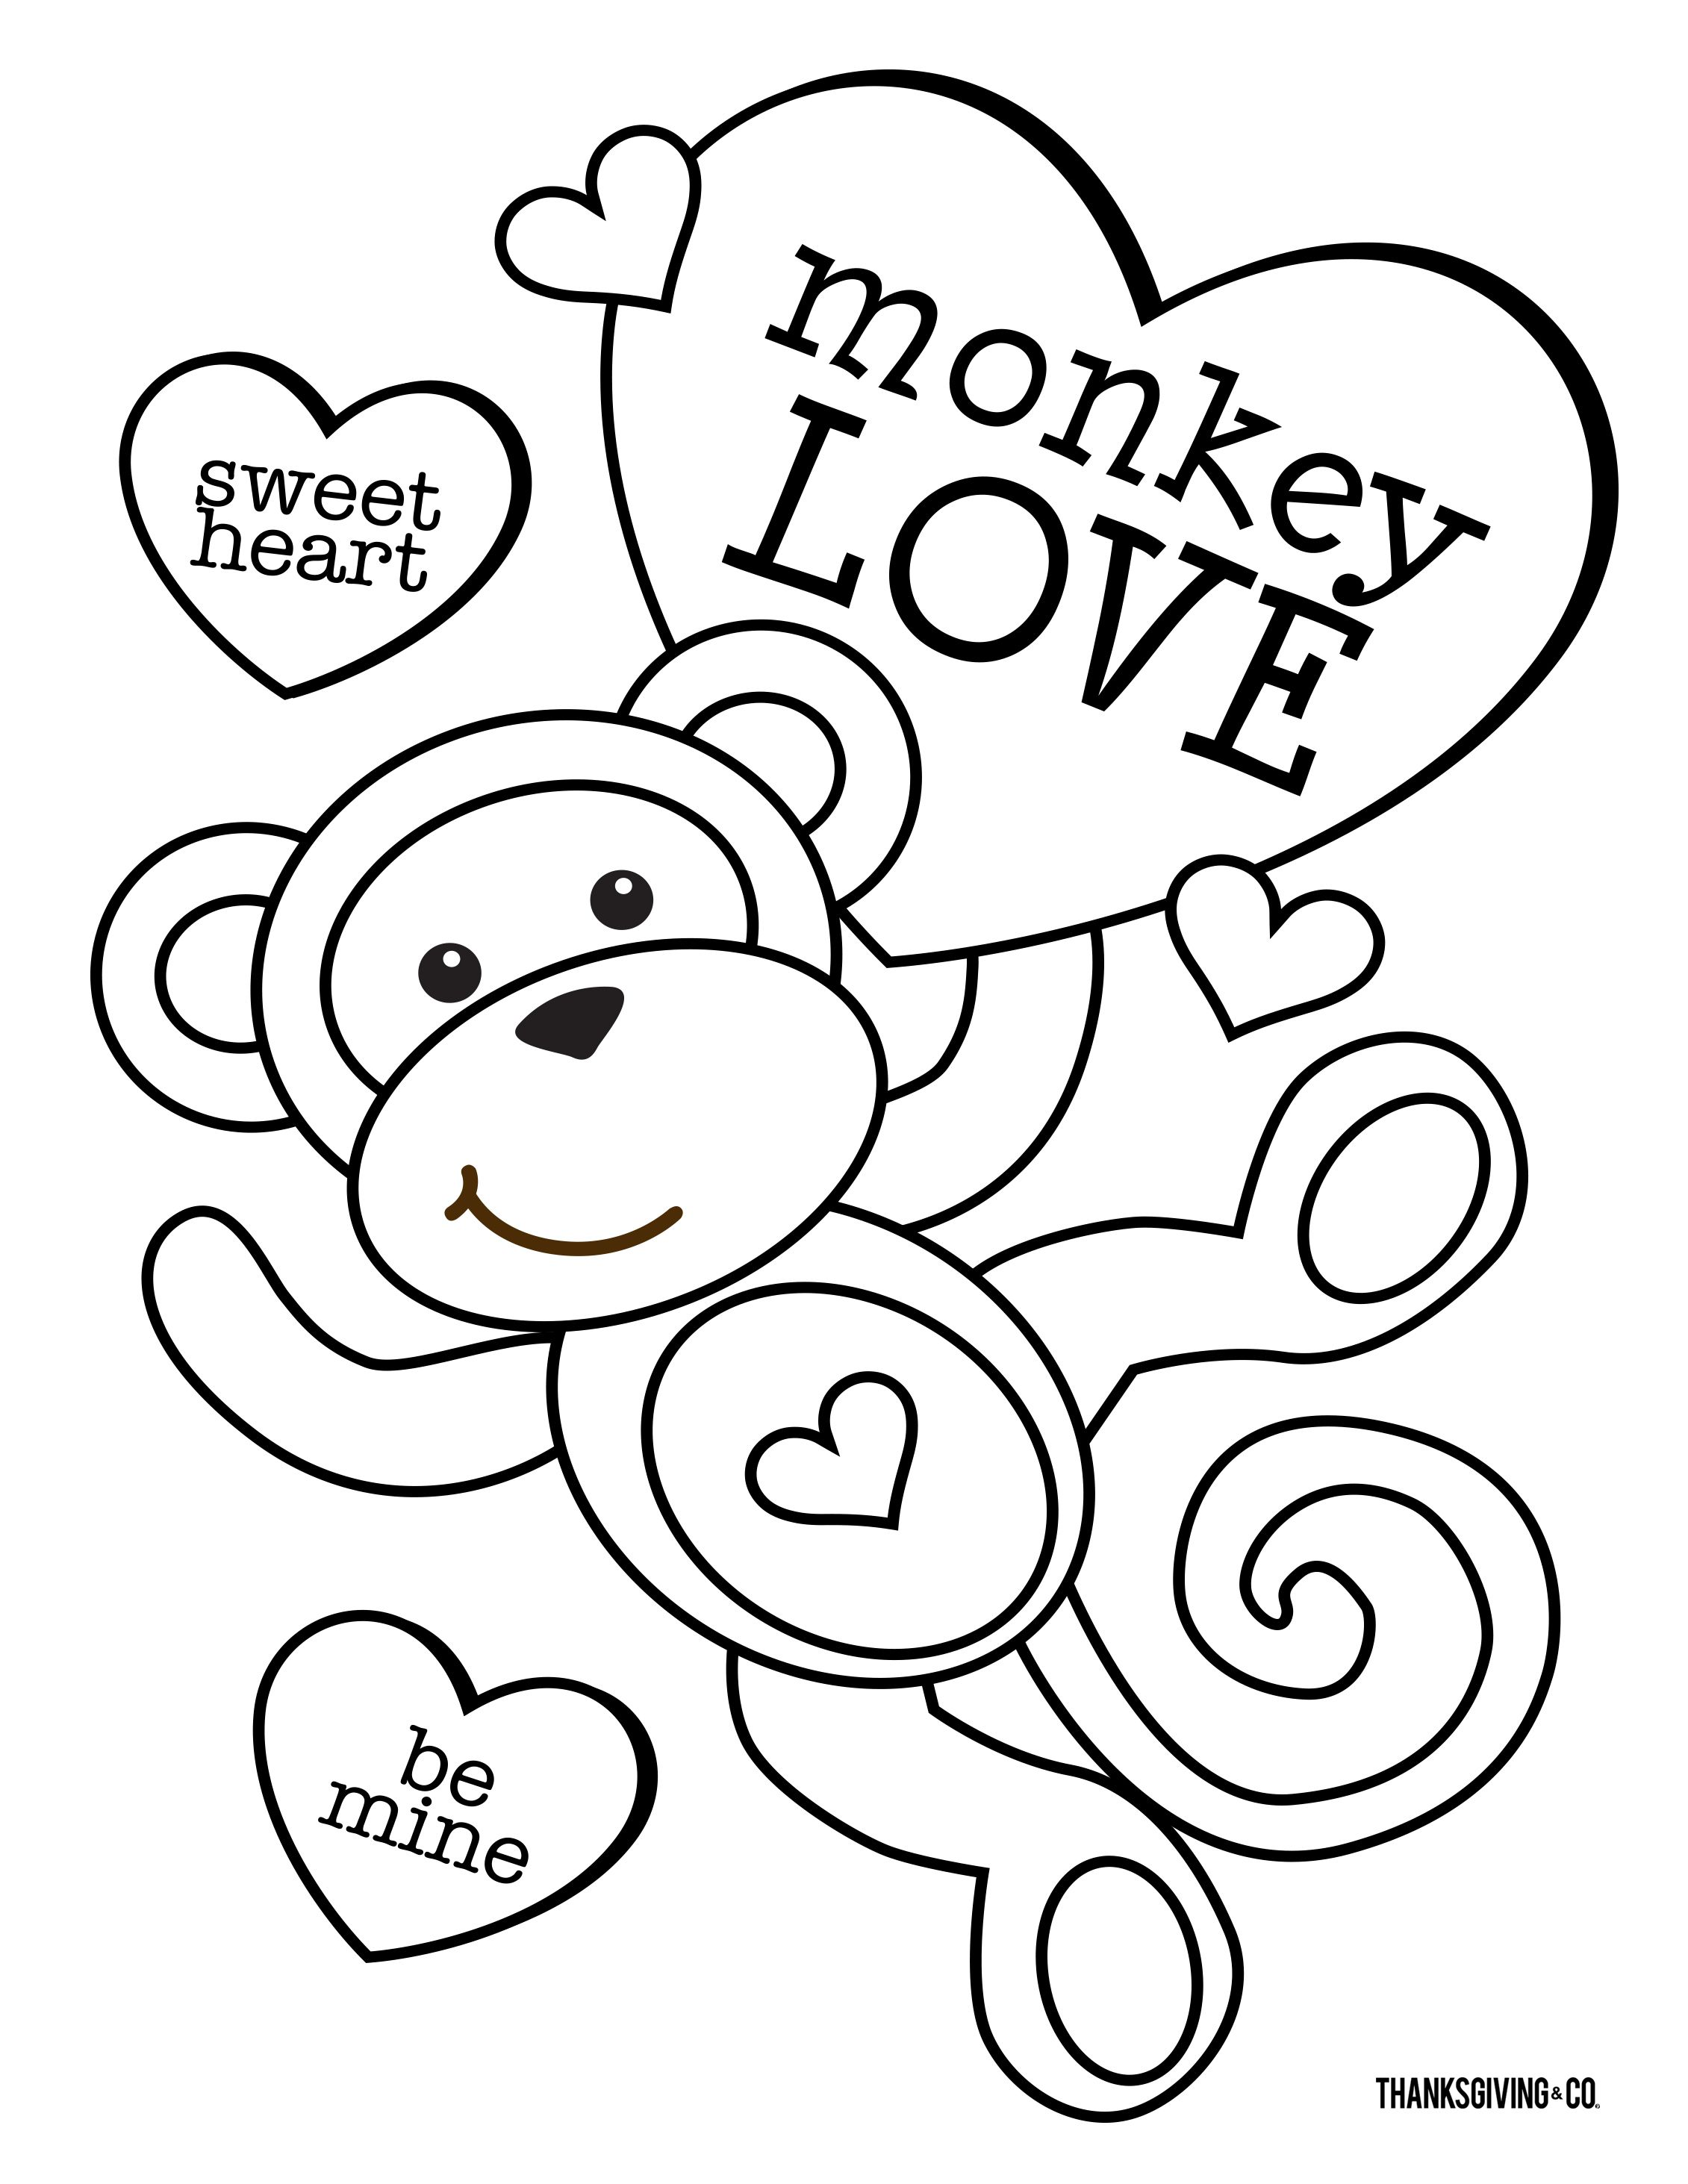 4 Free Valentine S Day Coloring Pages For Kids Valentines Day Coloring Page Free Kids Coloring Pages Valentine Coloring Sheets